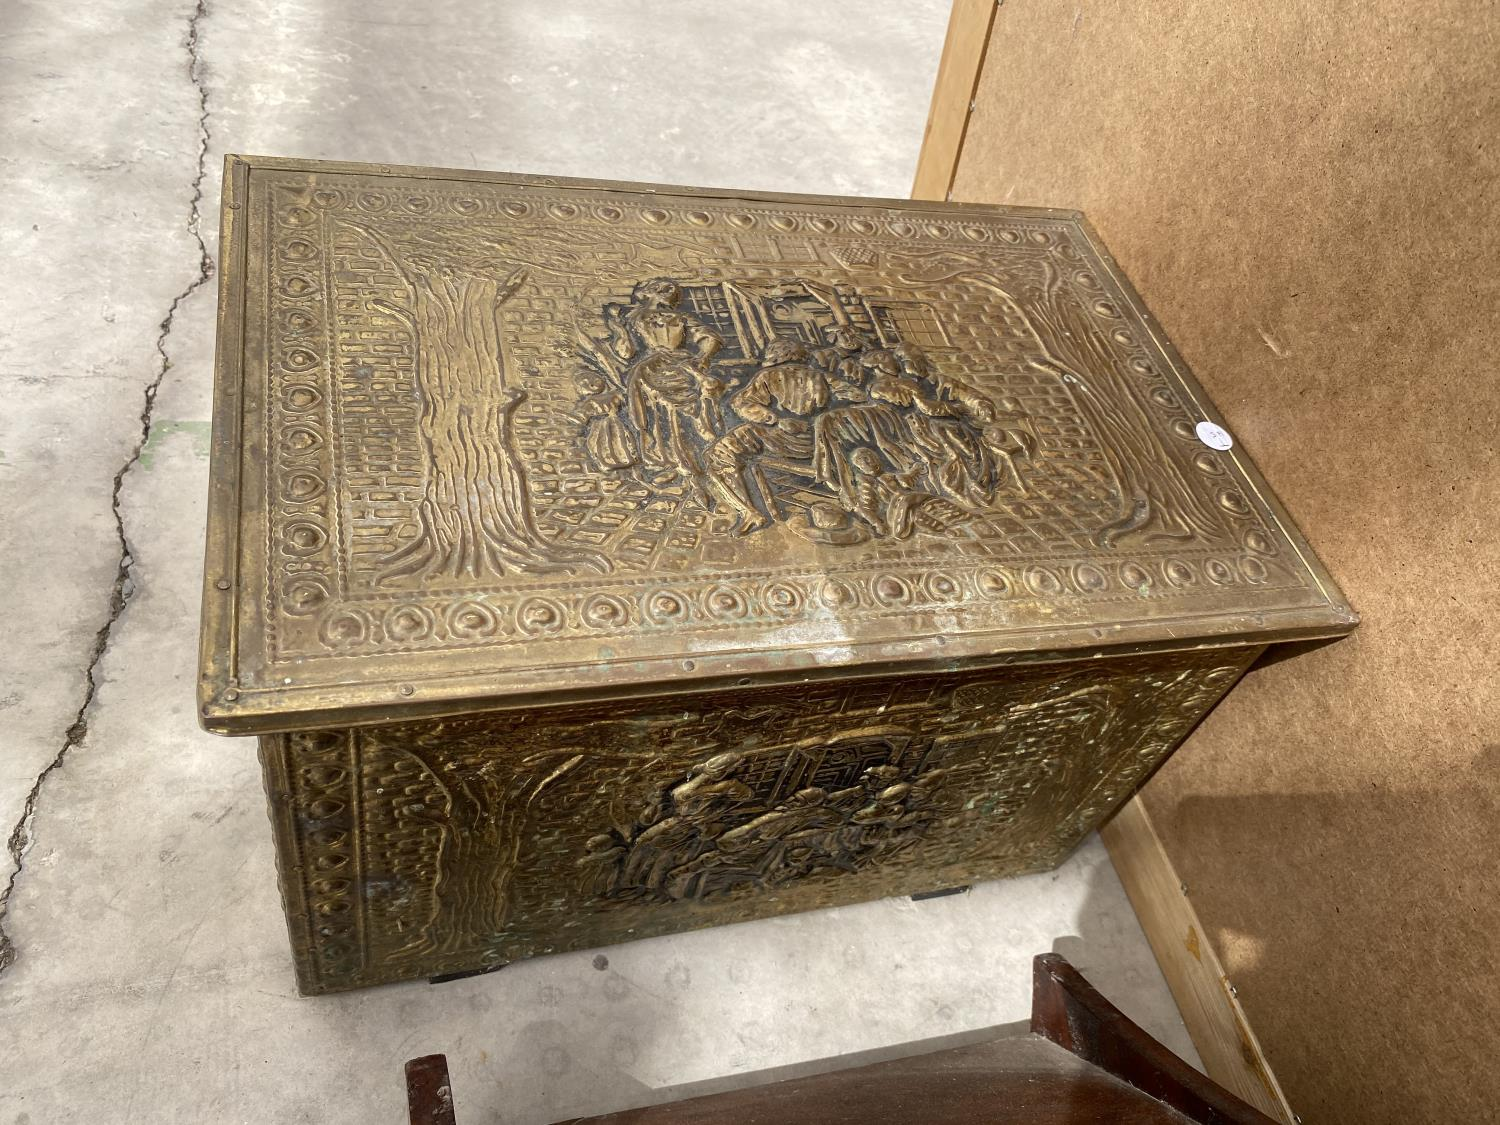 A BRASS LOG BOX, A WOODEN COAL BOX A MIRROR AND AN OIL LAMP - Image 3 of 5